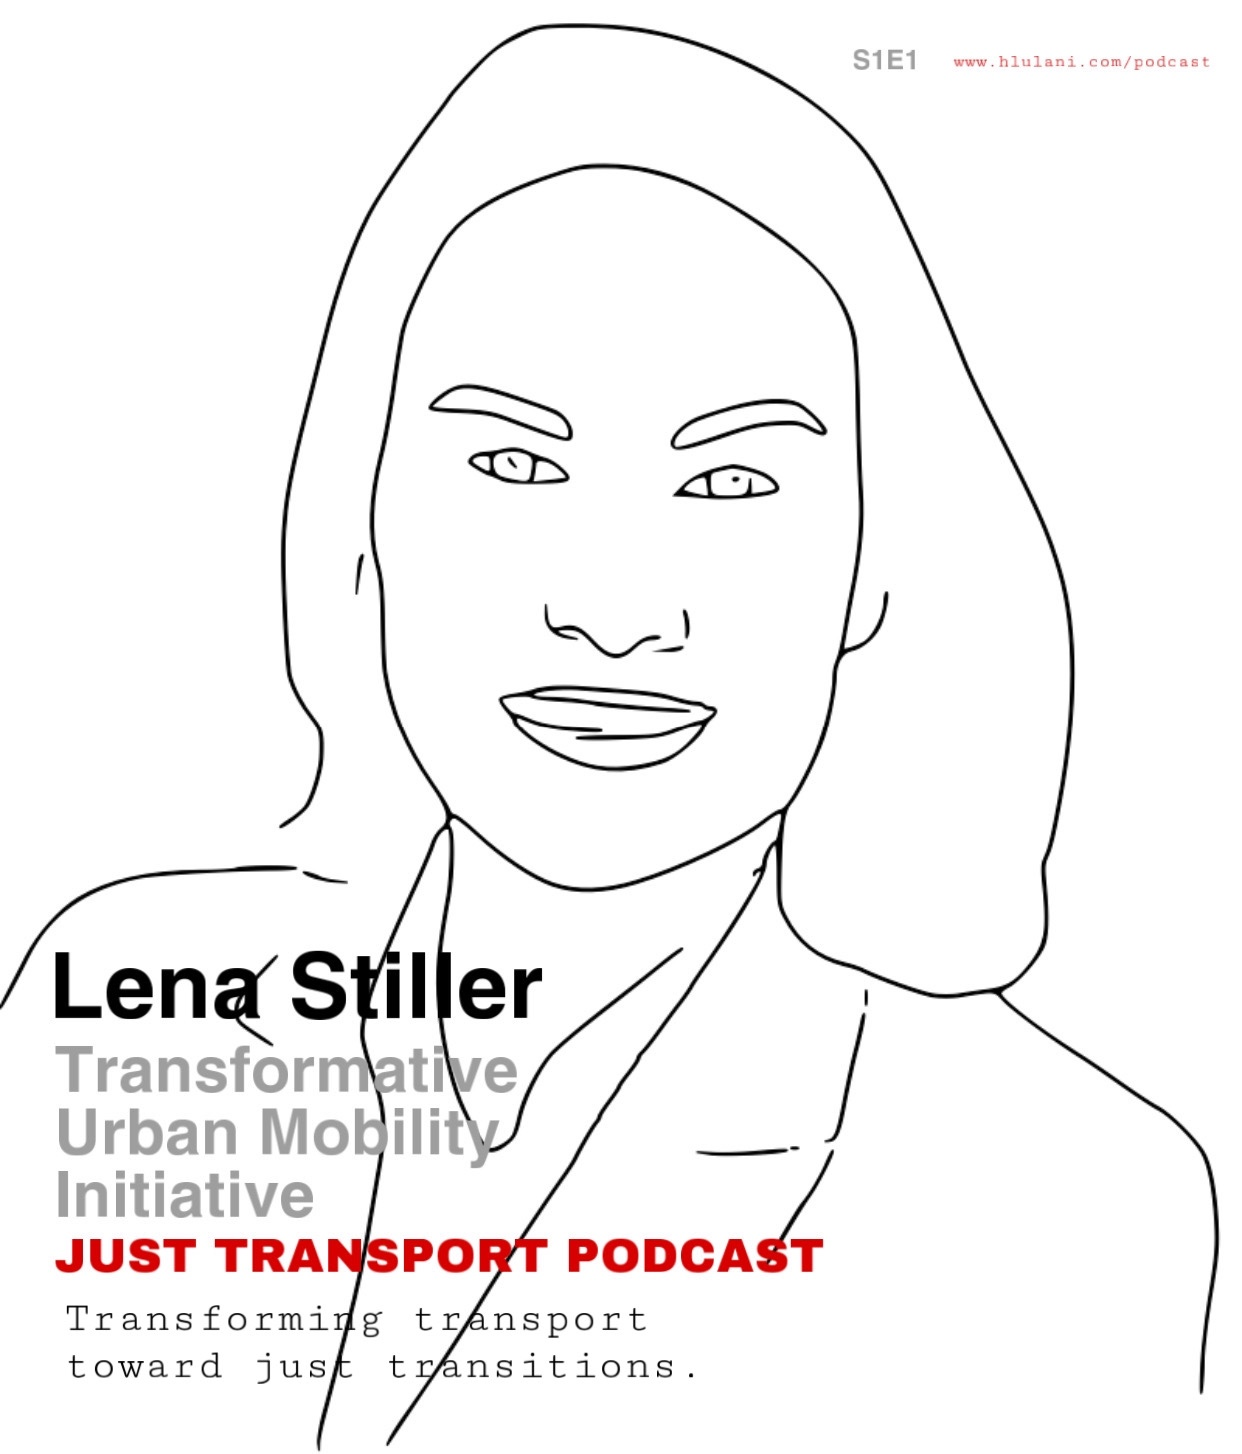 PODCAST #1: Lena Stiller, Transformative Urban Mobility Initiative (TUMI)